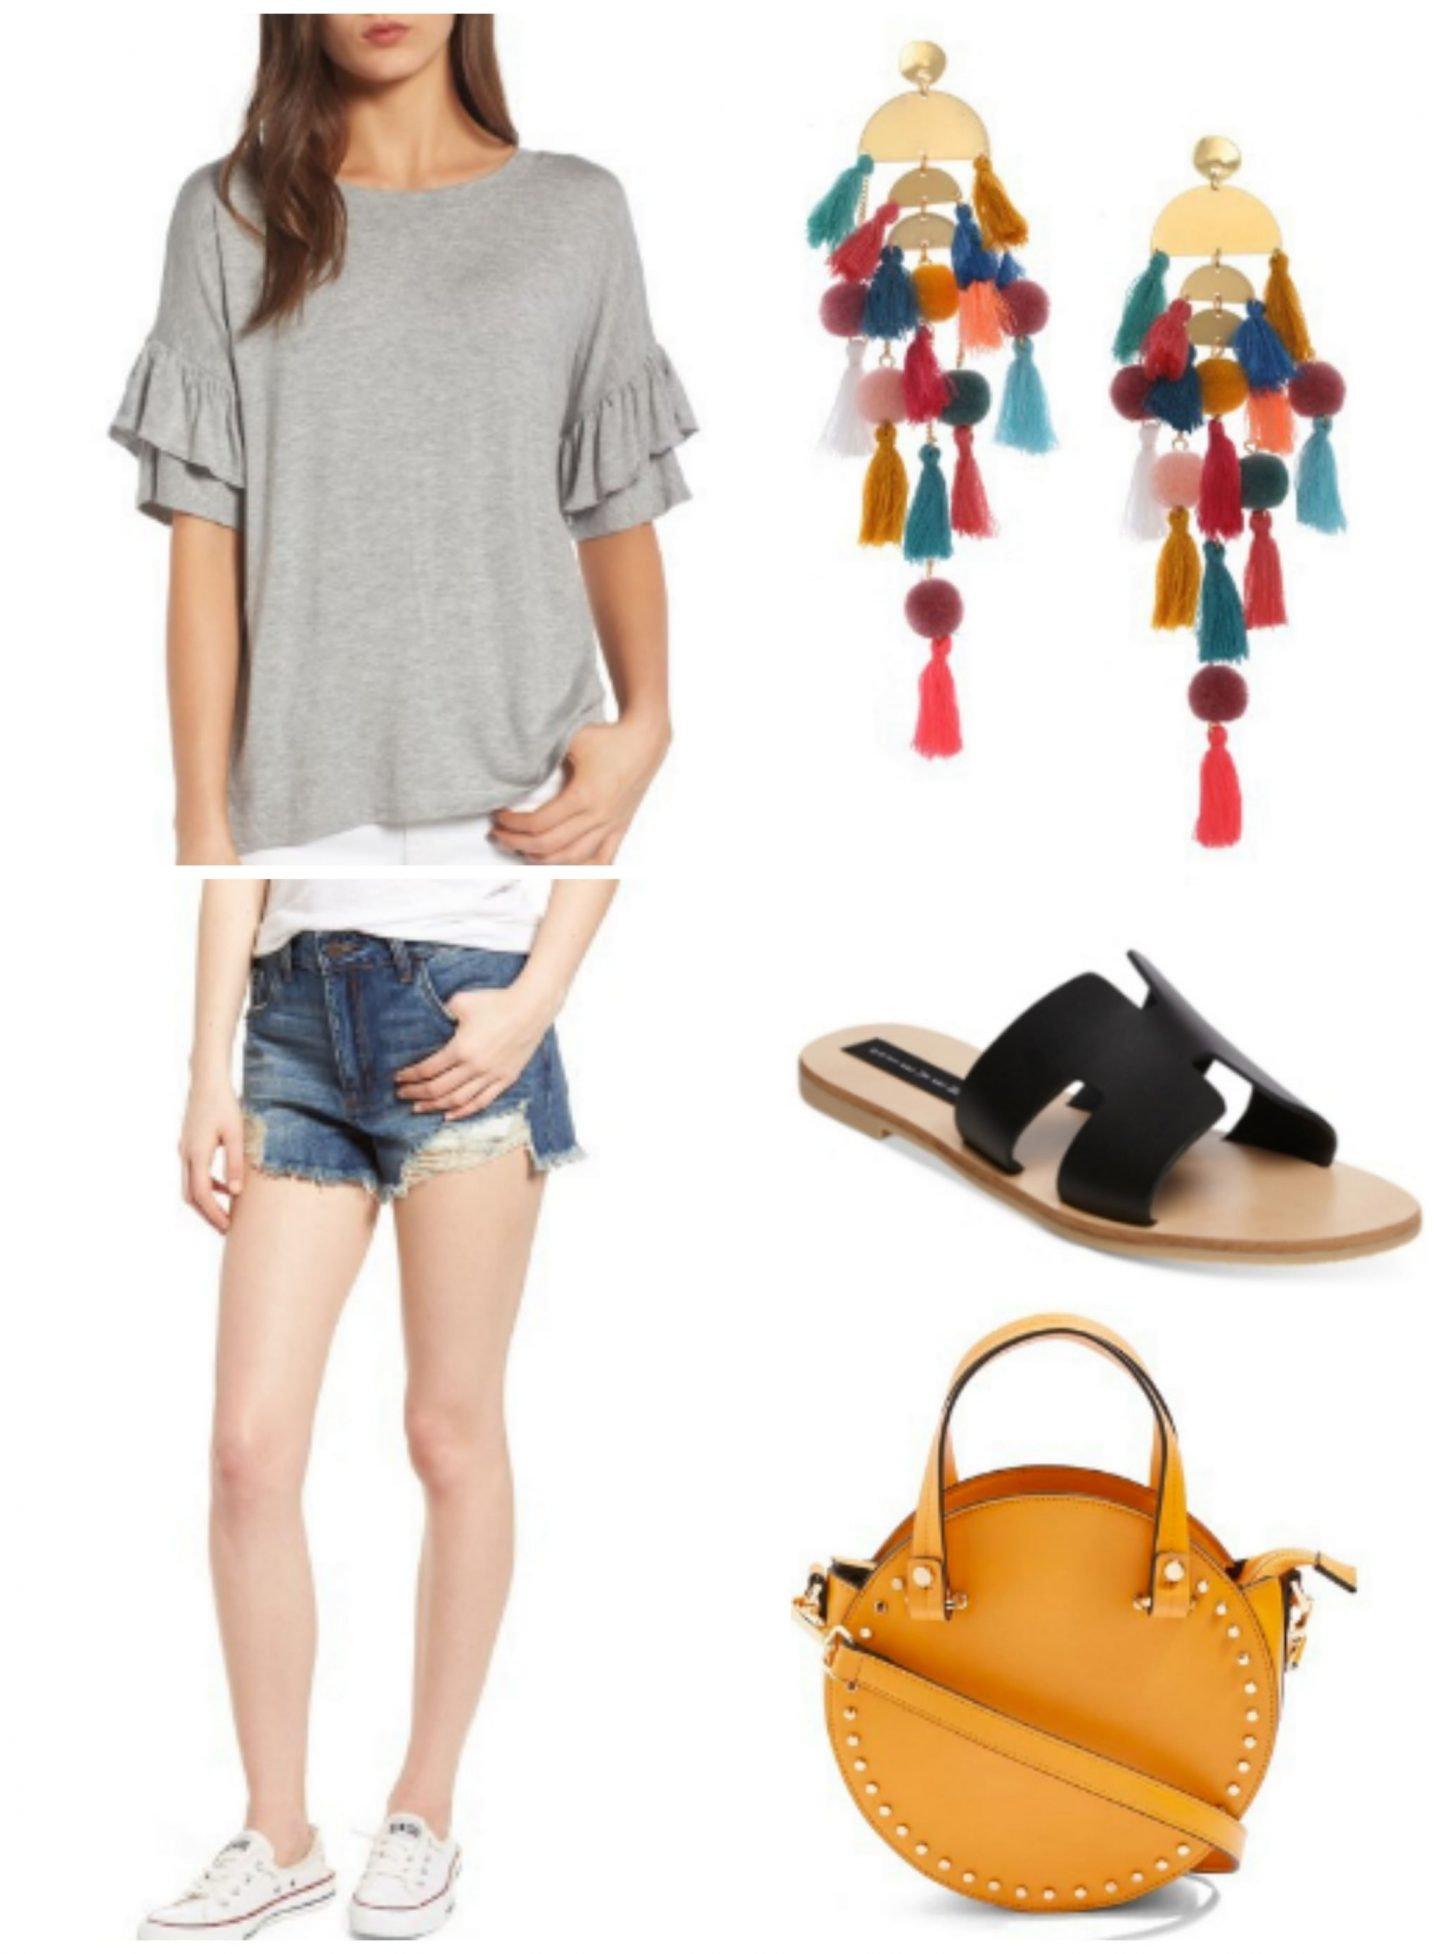 Tuesday's Cravings: Casual Outfit Idea